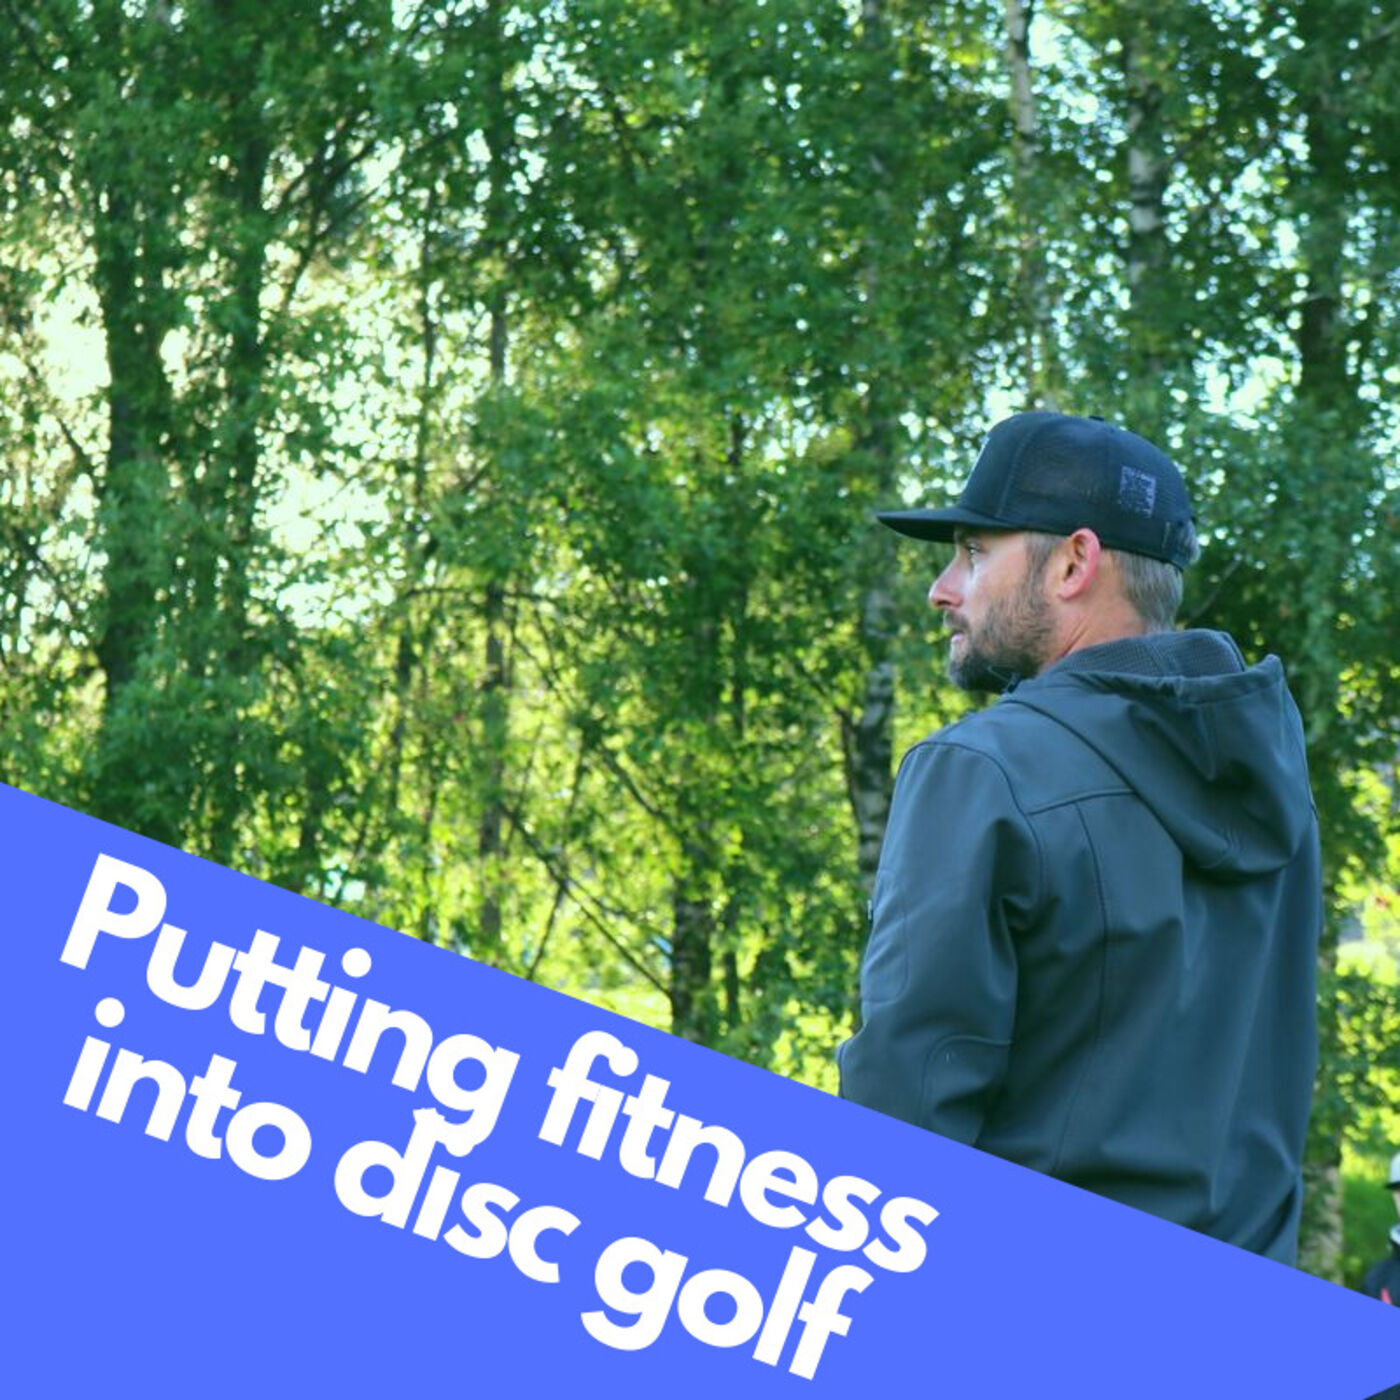 Putting fitness into disc golf - a talk with Seth Munsey